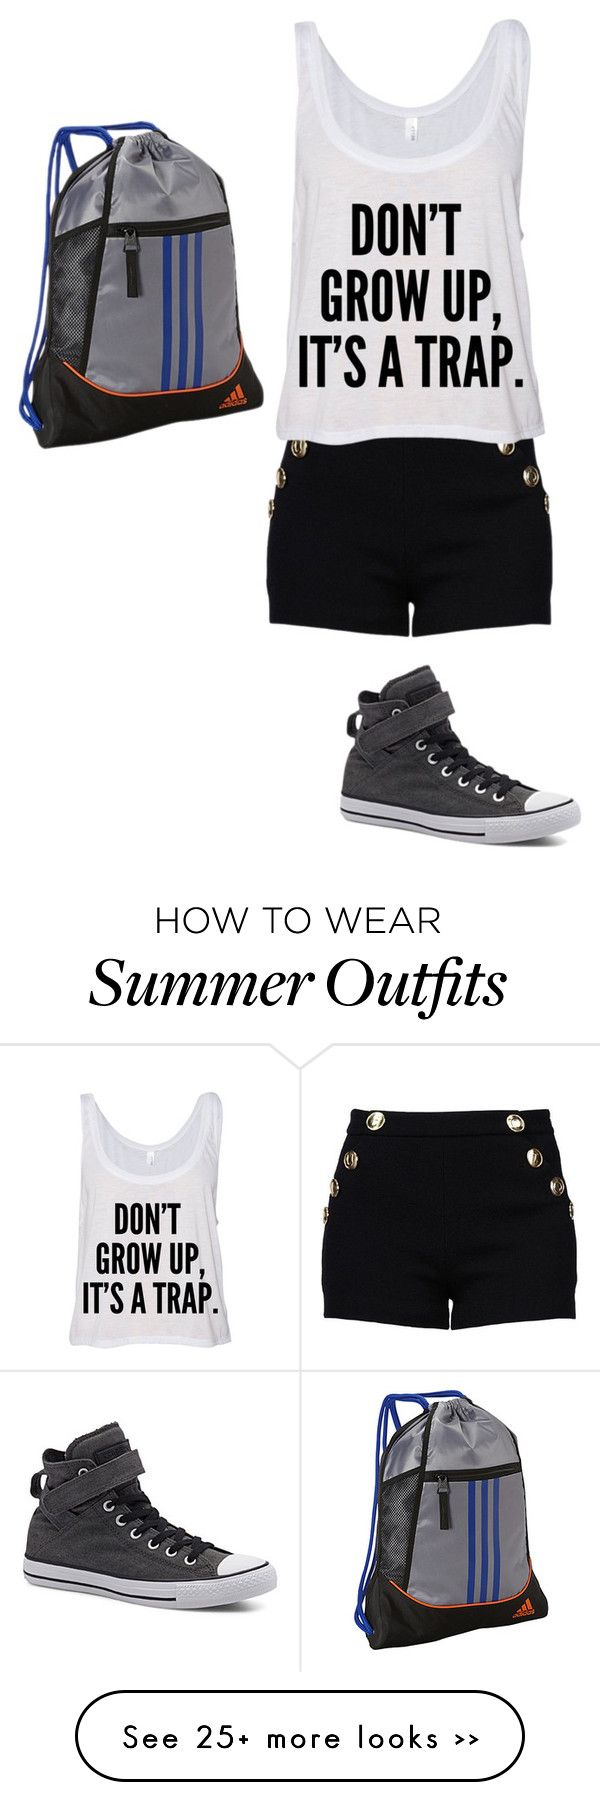 """Untitled #301"" by bvbgirl134 on Polyvore featuring Boutique Moschino, Converse and adidas"